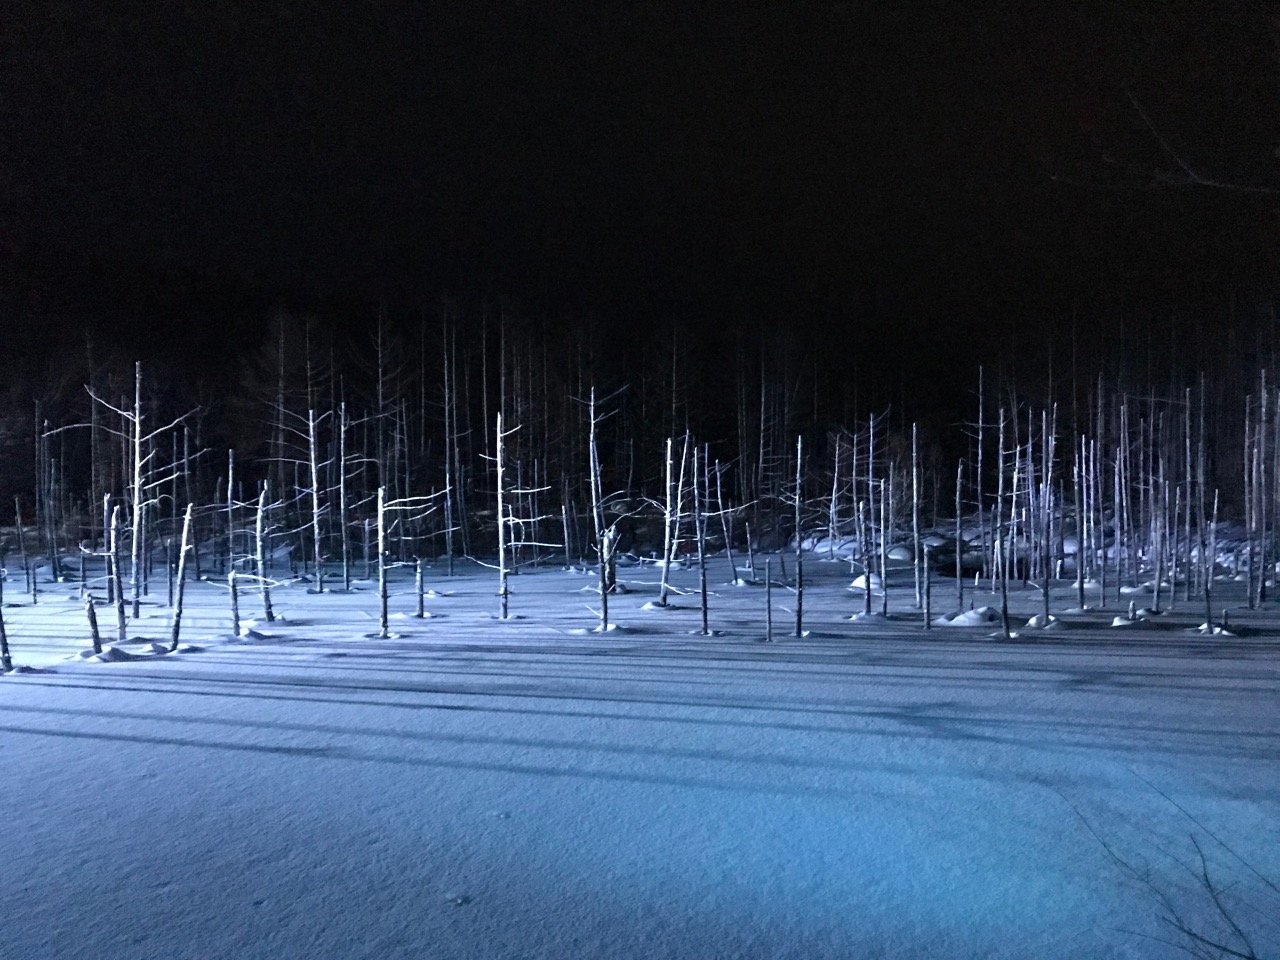 Blue pond in snow under spot lights.